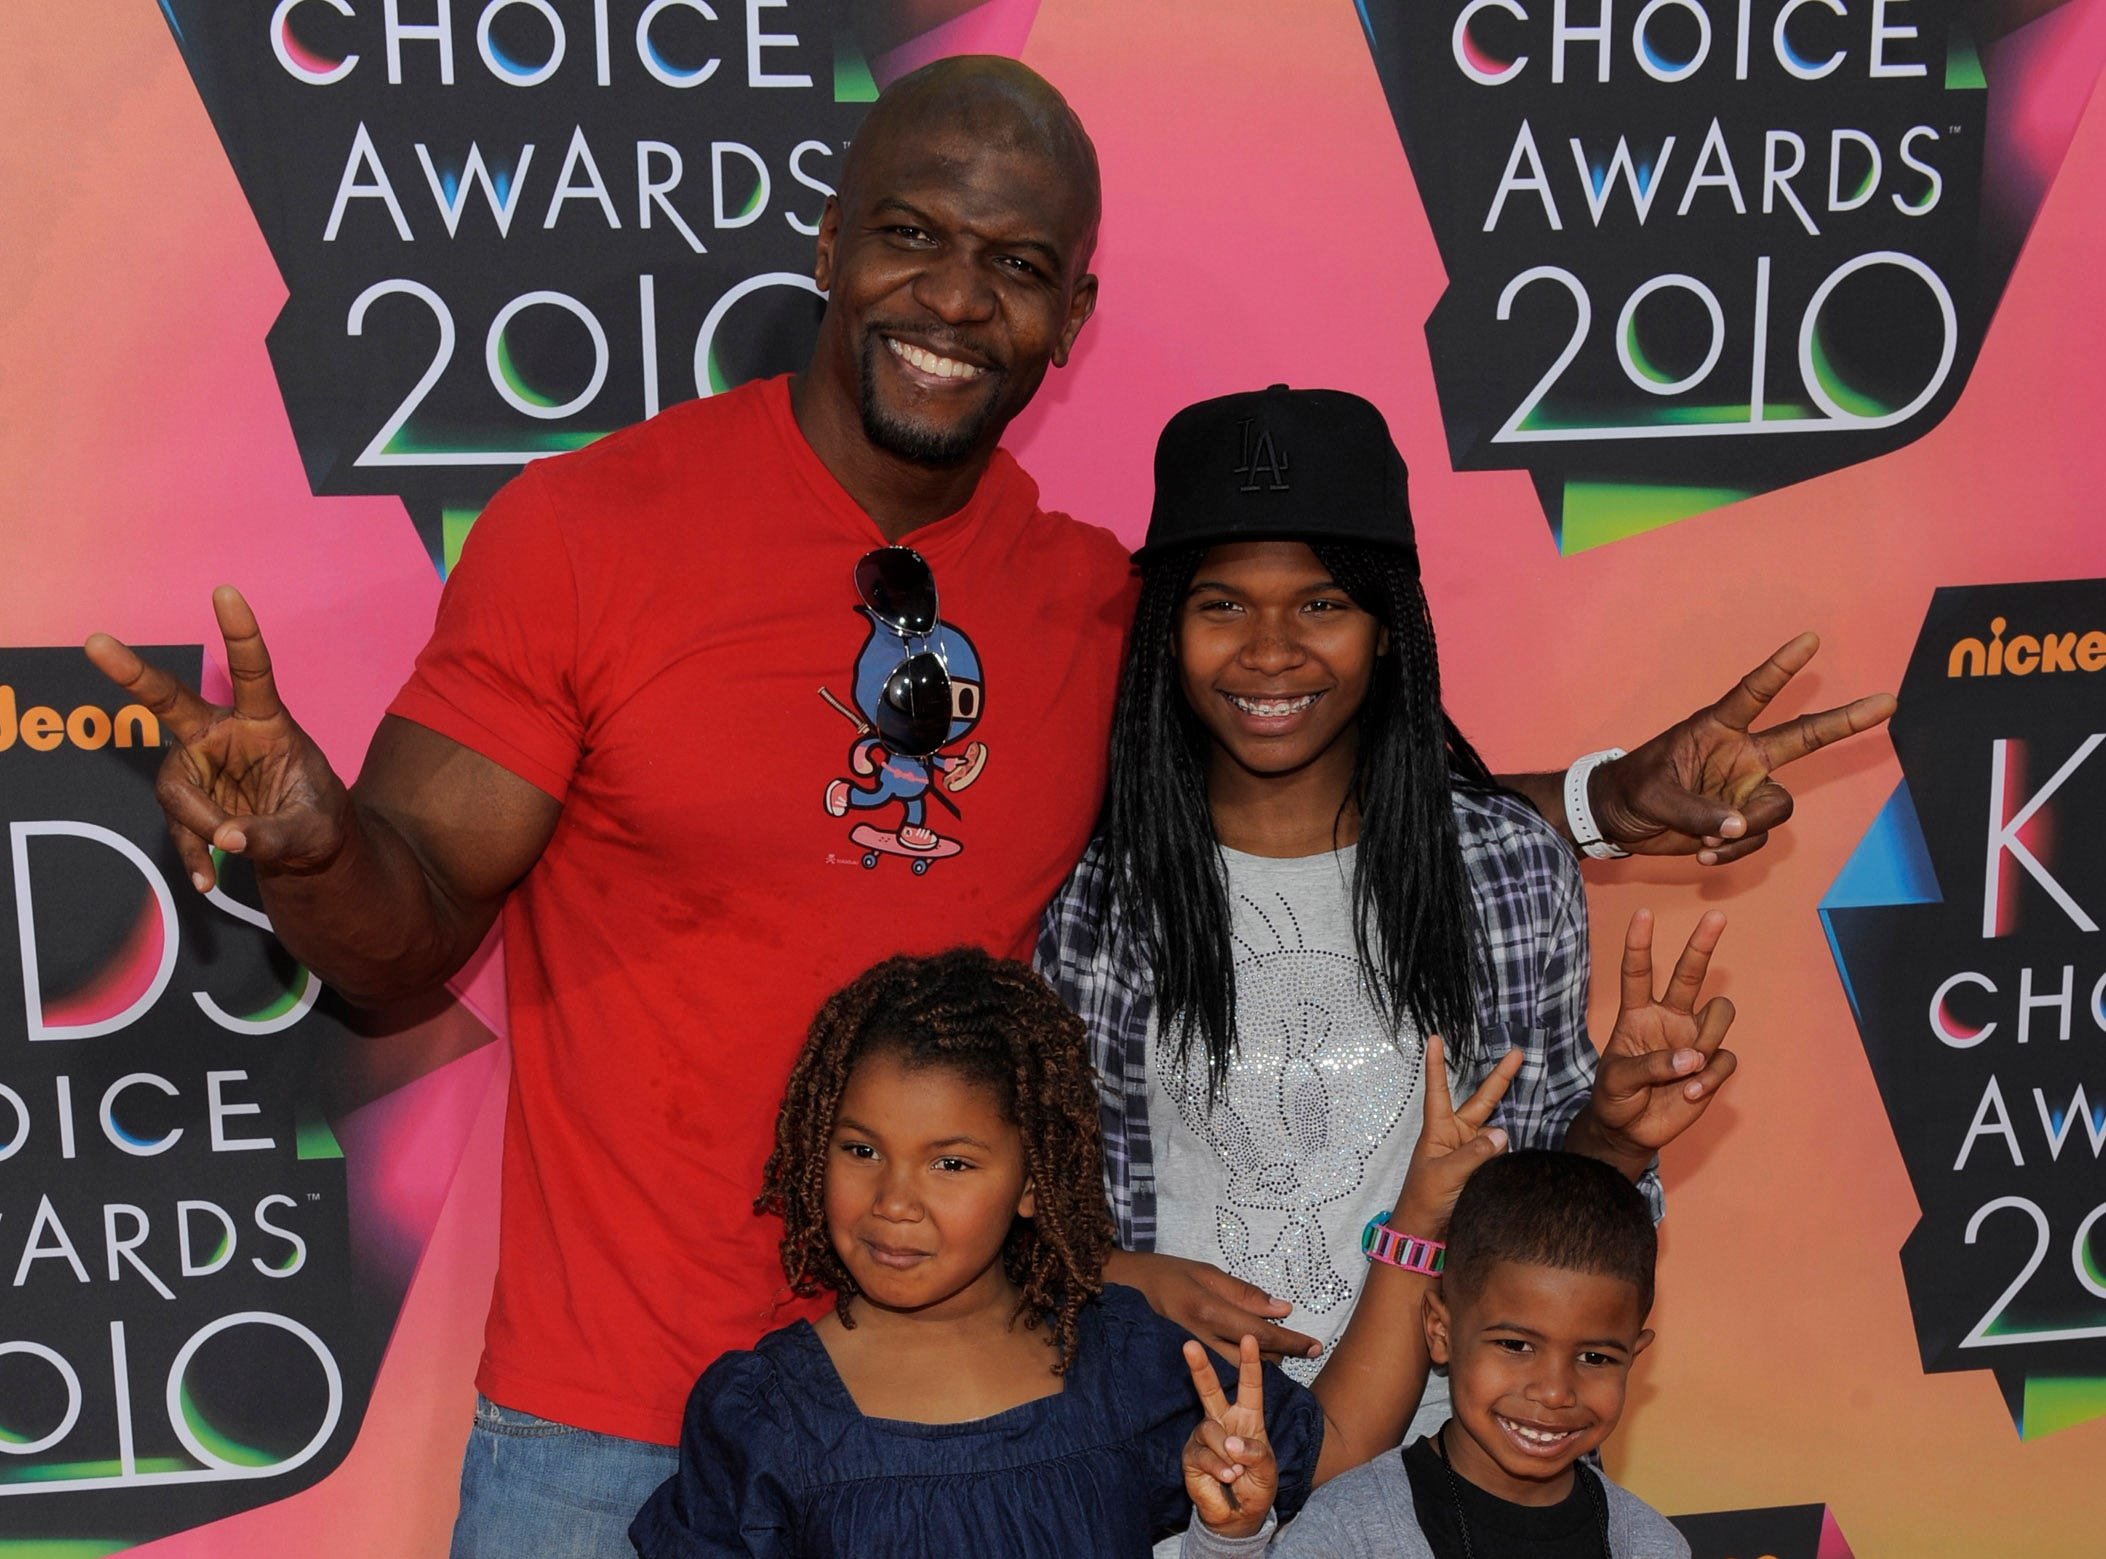 Terry Crews and his family